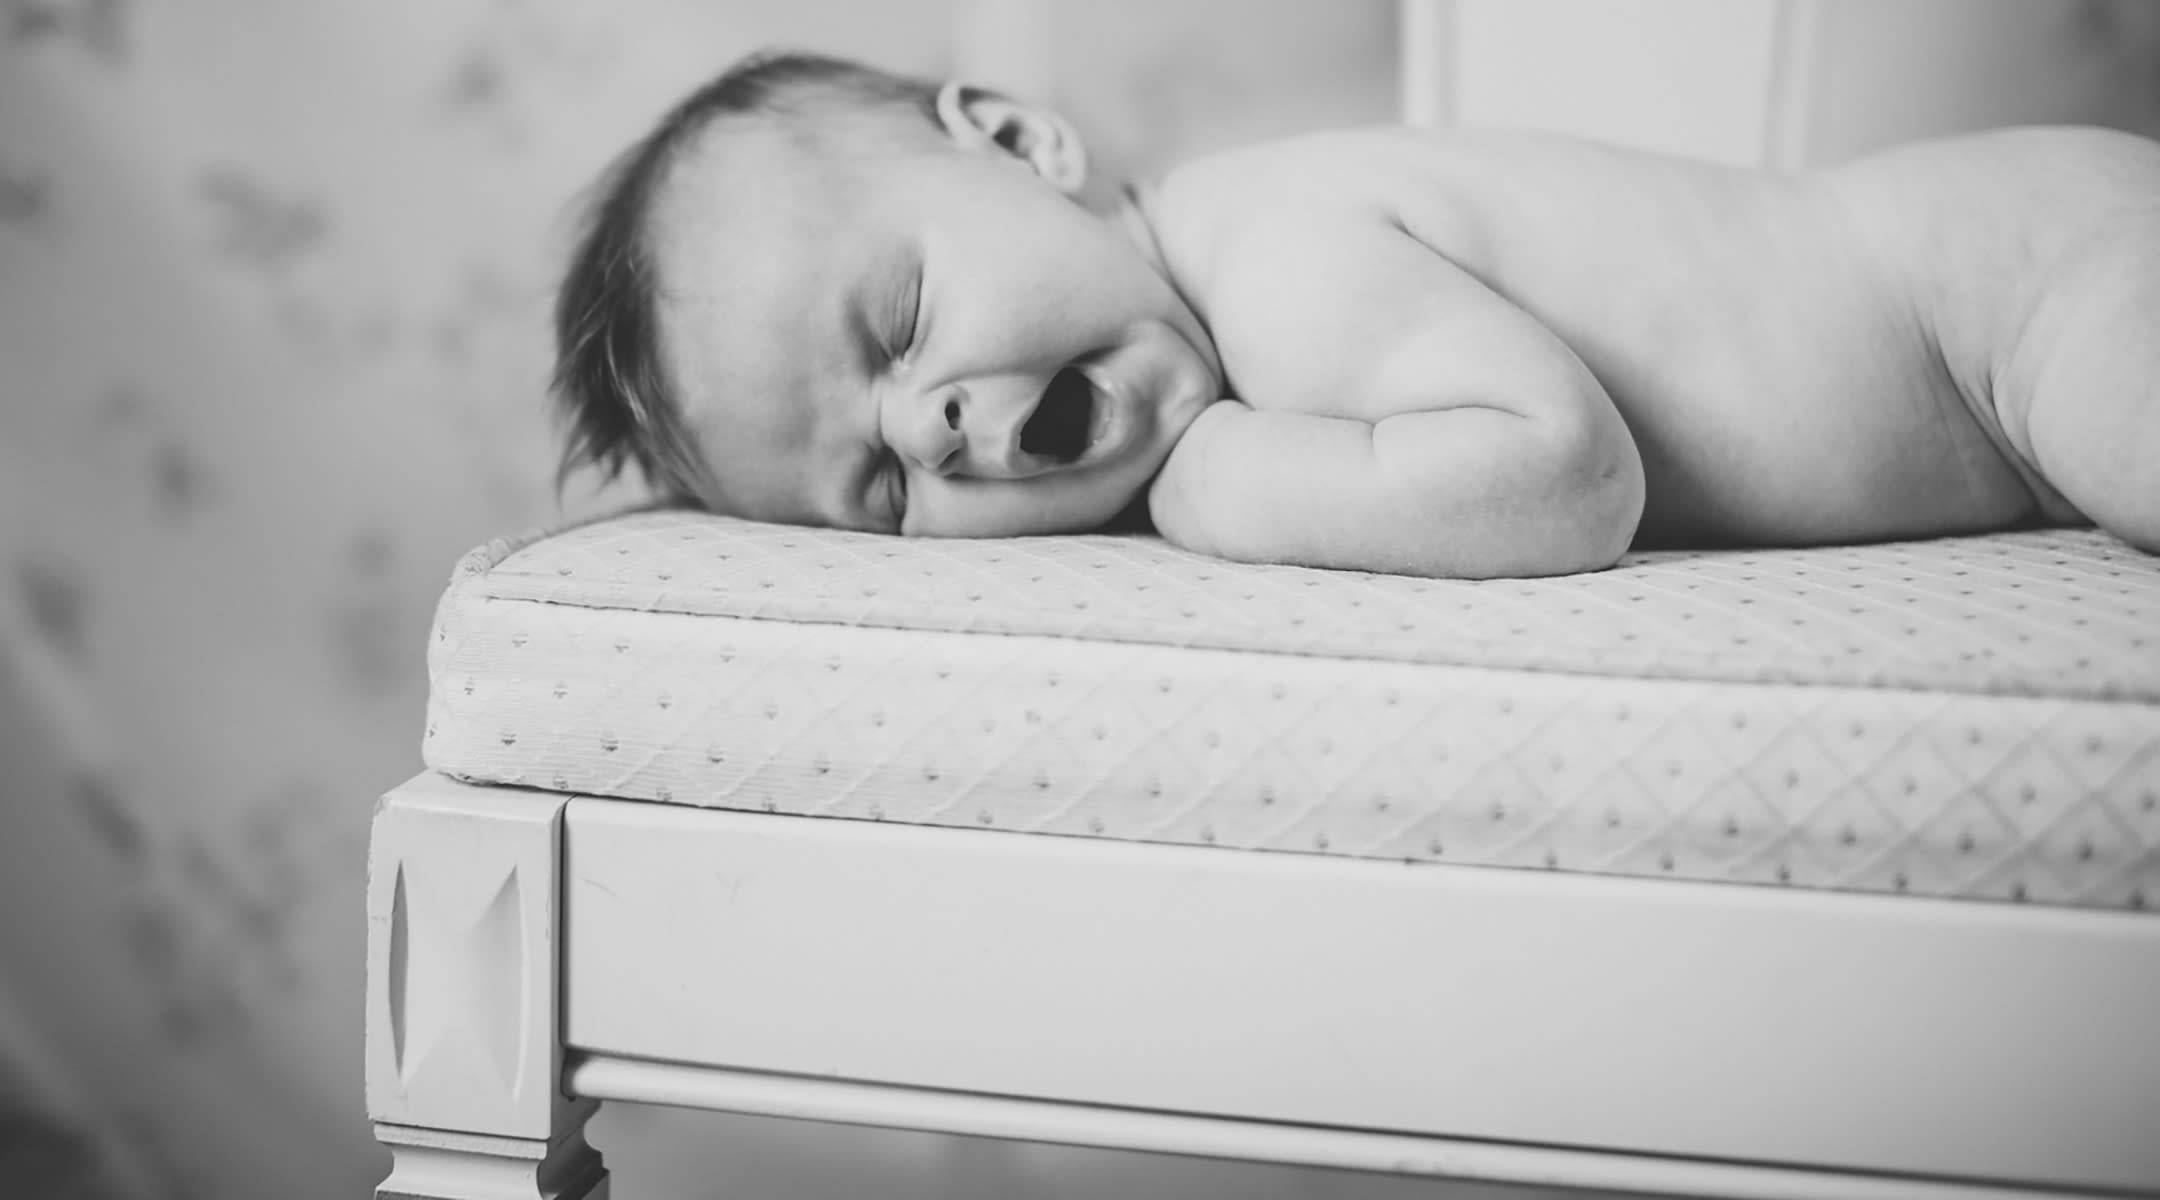 A black-and-white image of a yawning baby